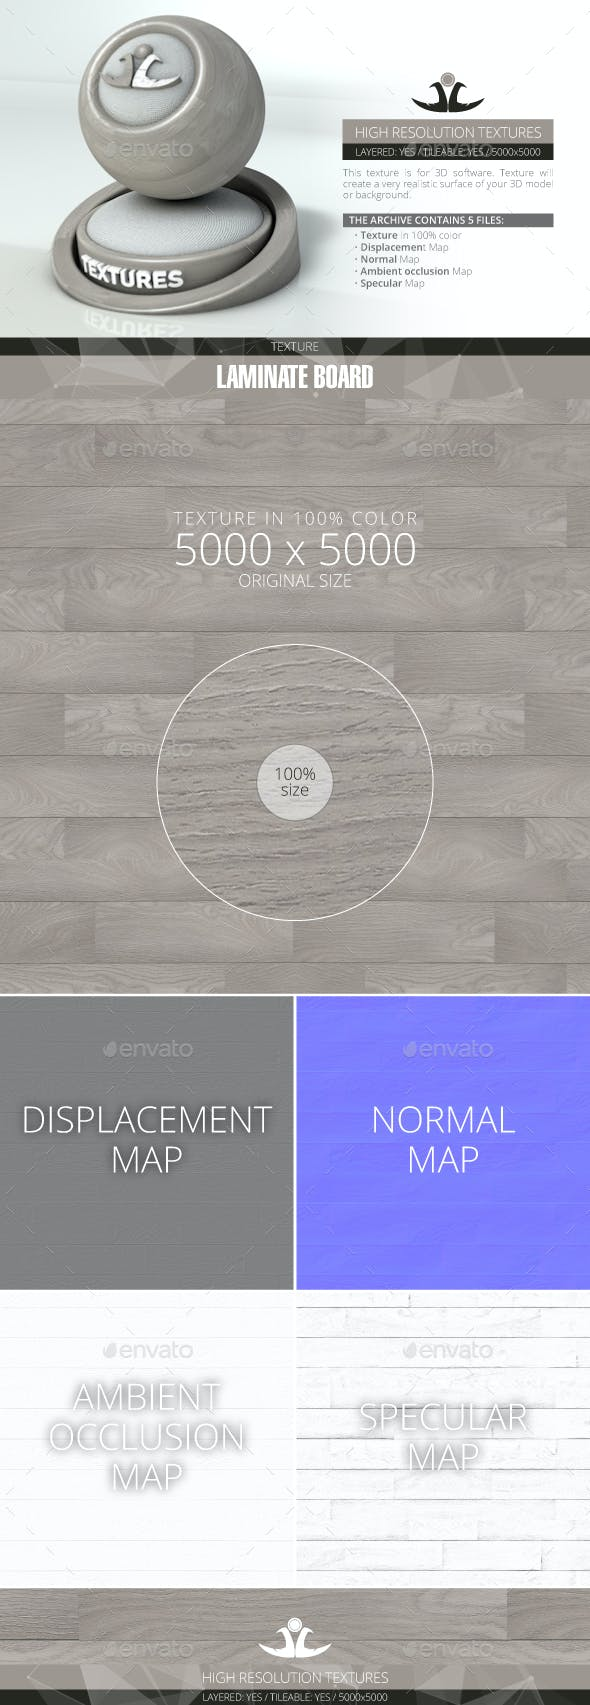 Laminate Board 7 - 3DOcean Item for Sale